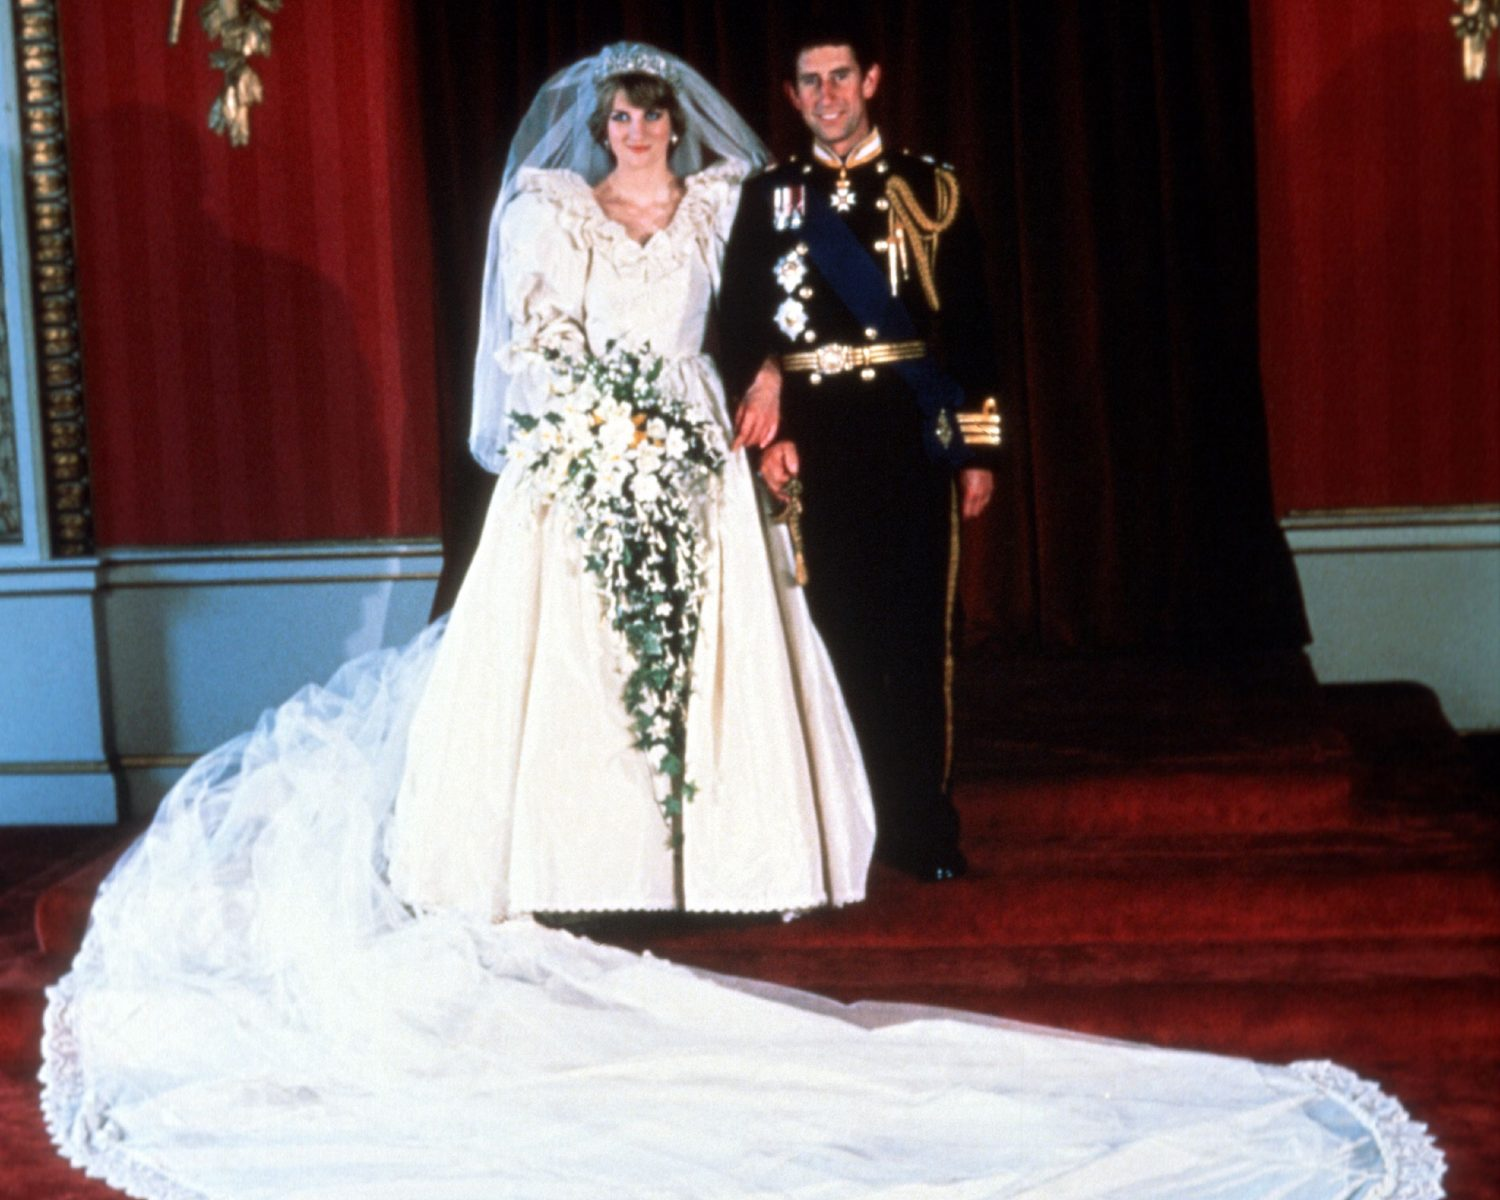 Prince Charles And Lady Diana Wedding Cake